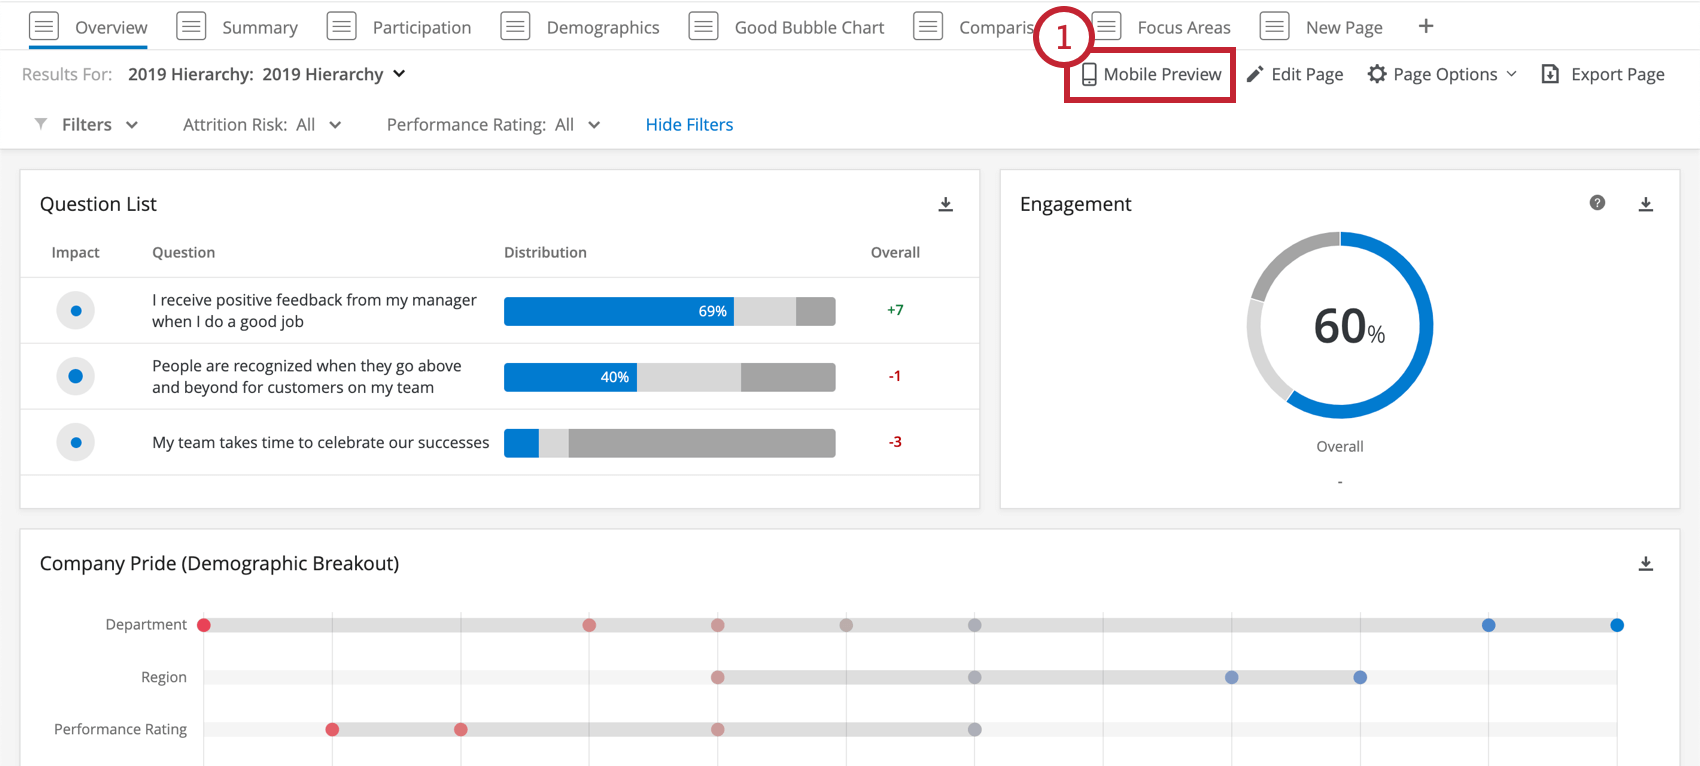 Mobile Preview button in an EX dashboard